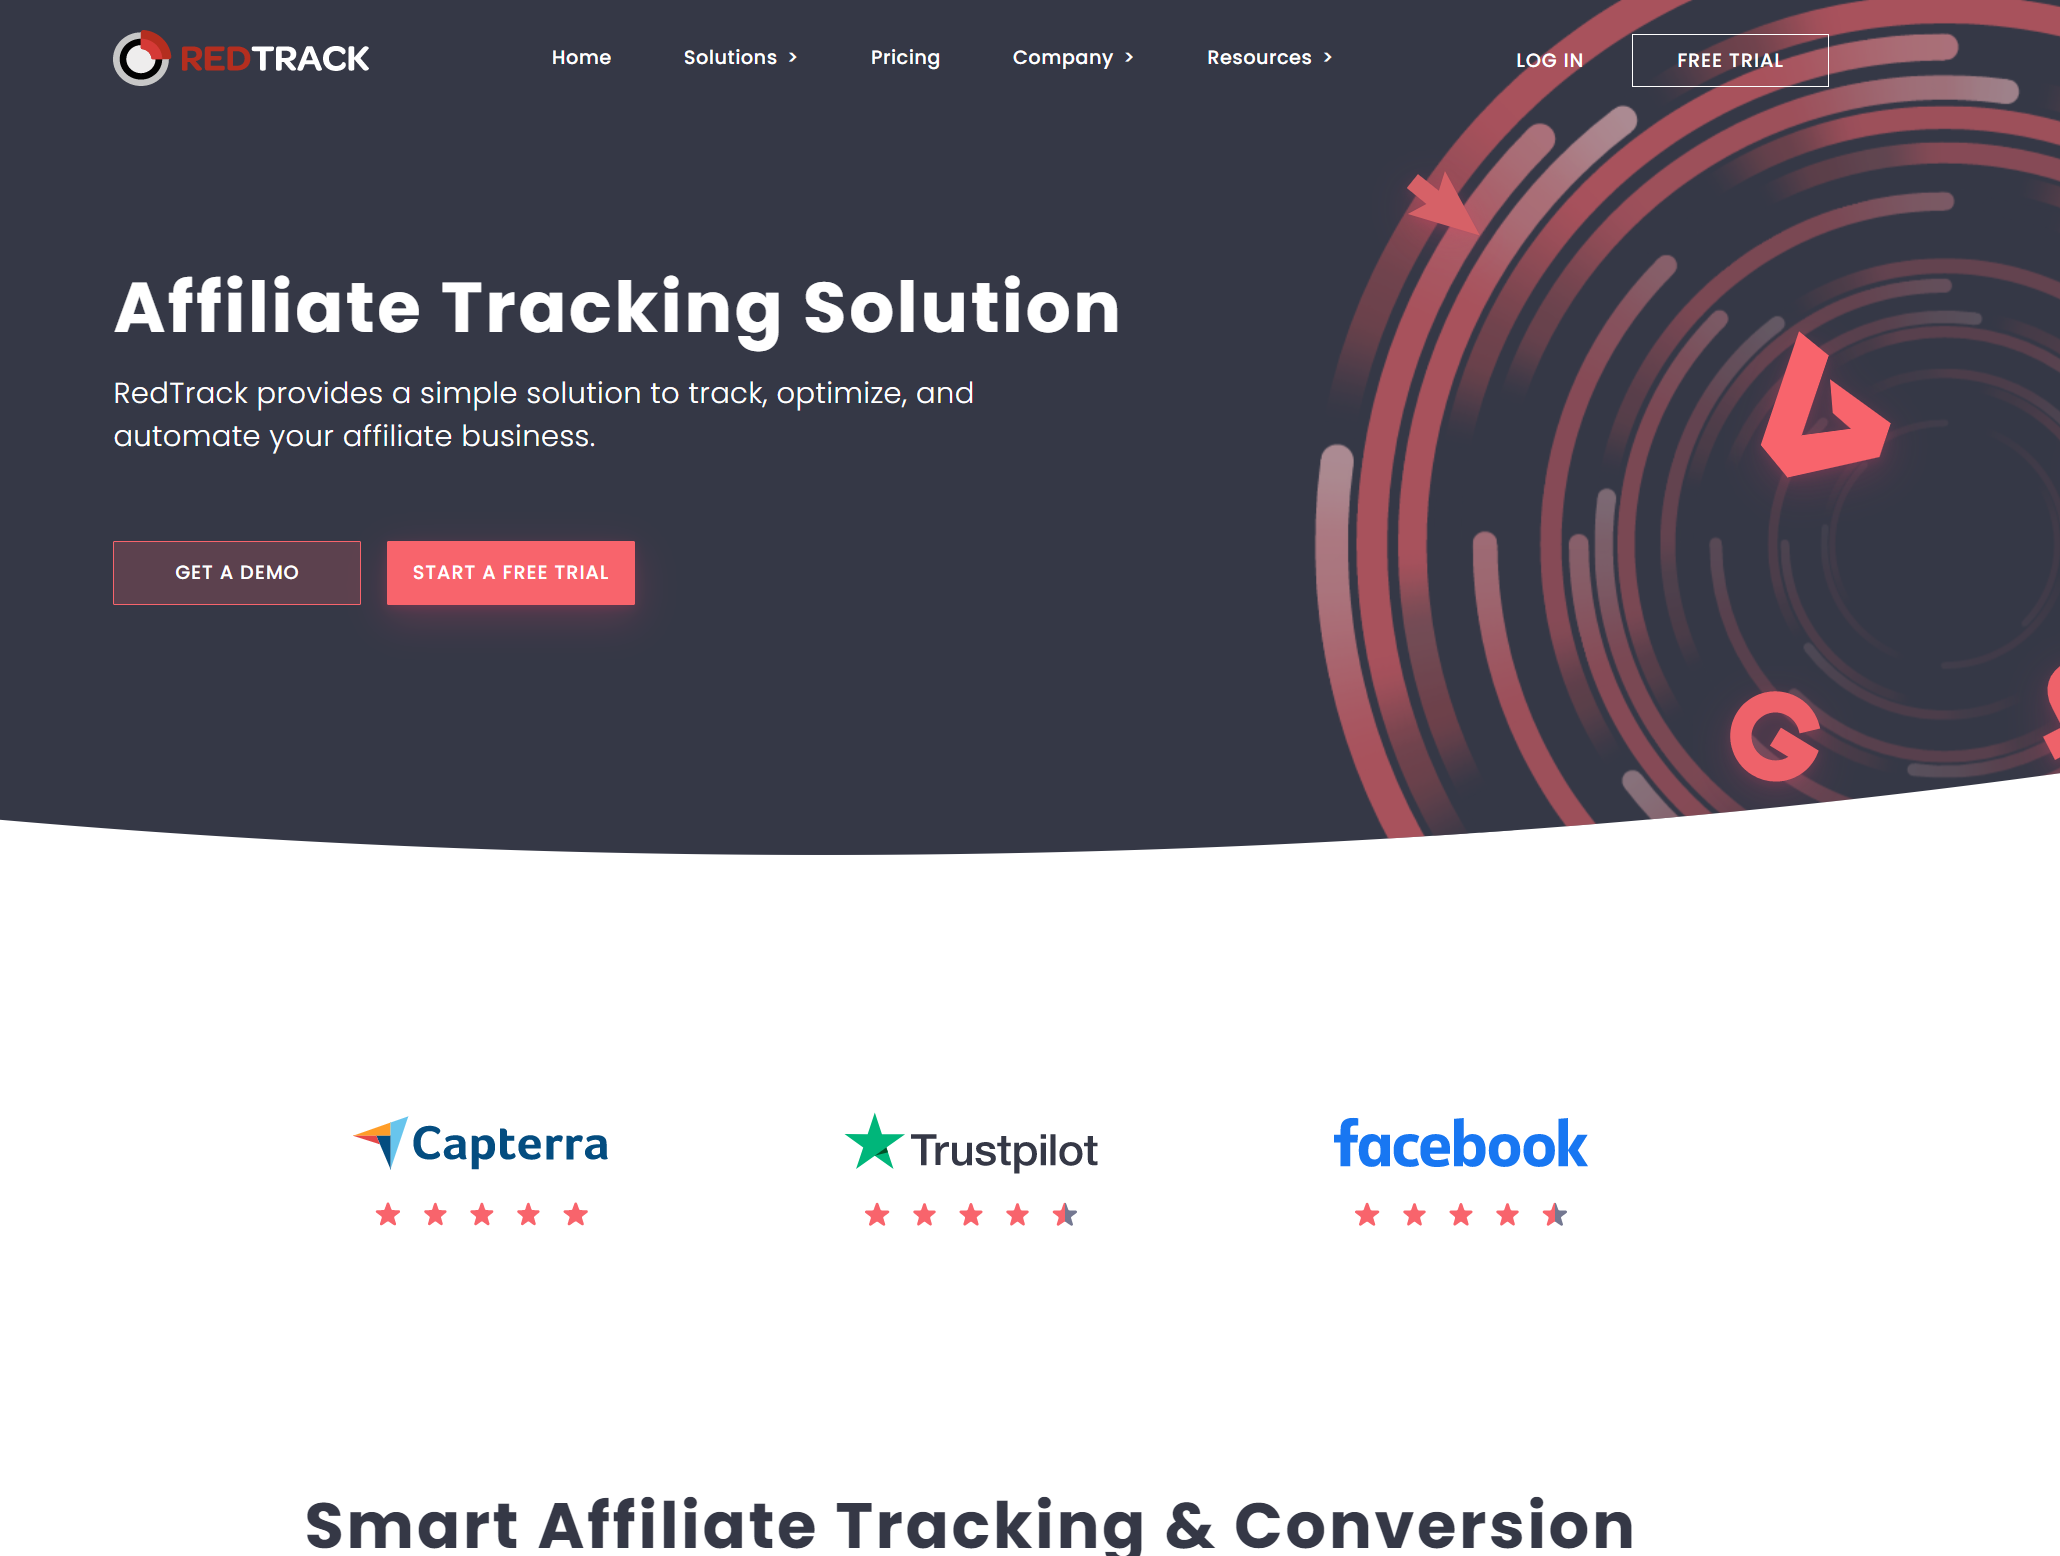 Redtrack affiliate tracking and conversion